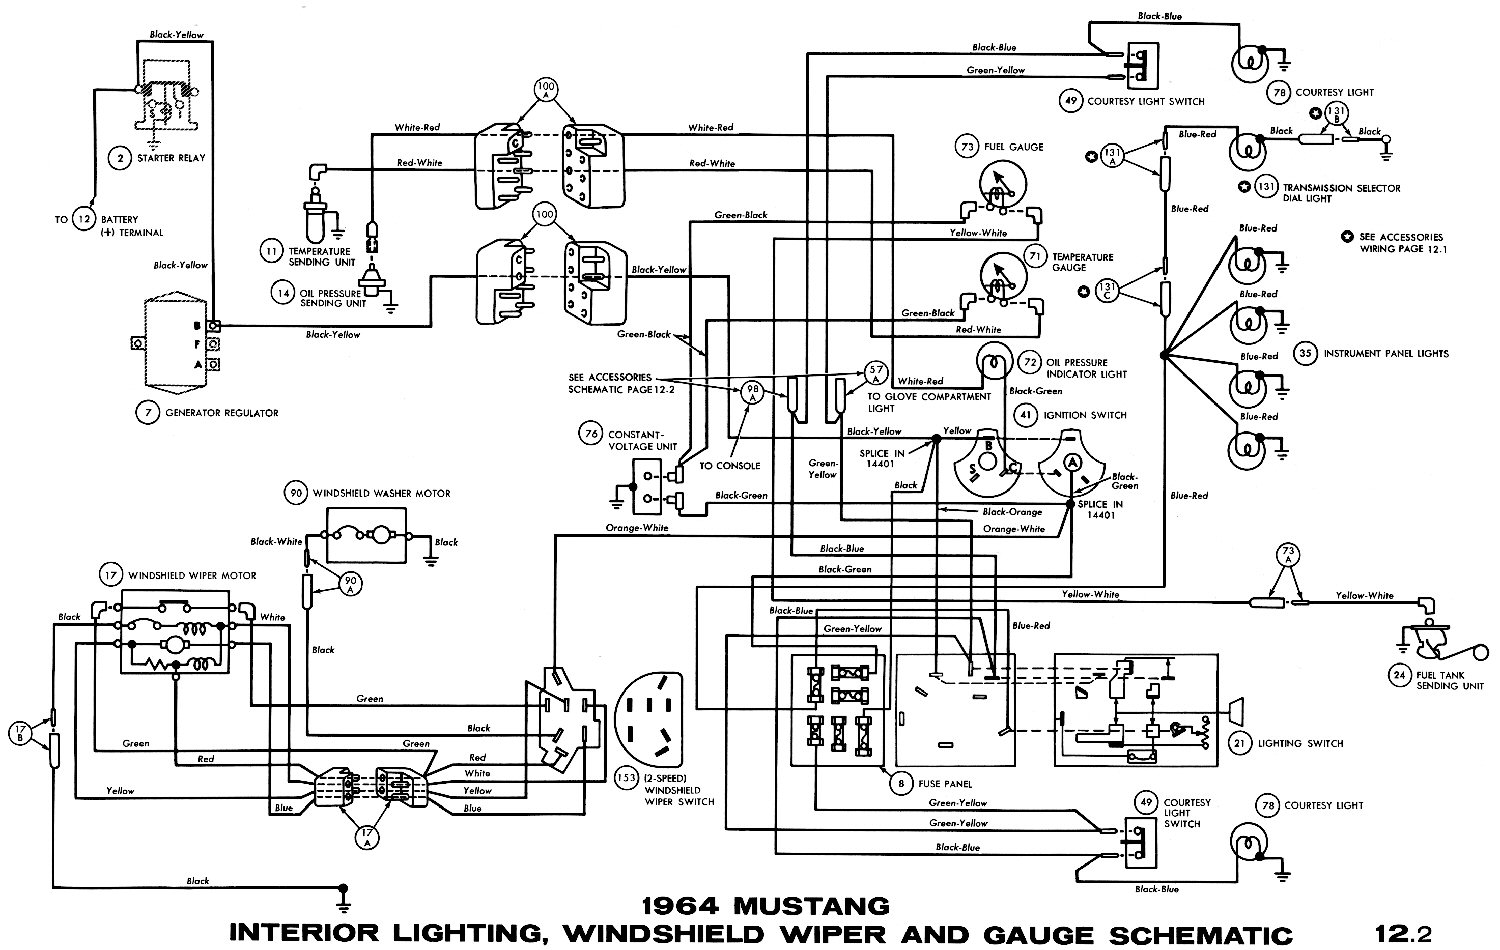 1964k 66 mustang wiring diagram online 65 ford mustang wiring diagram 1965 ford mustang wiring diagrams at mifinder.co